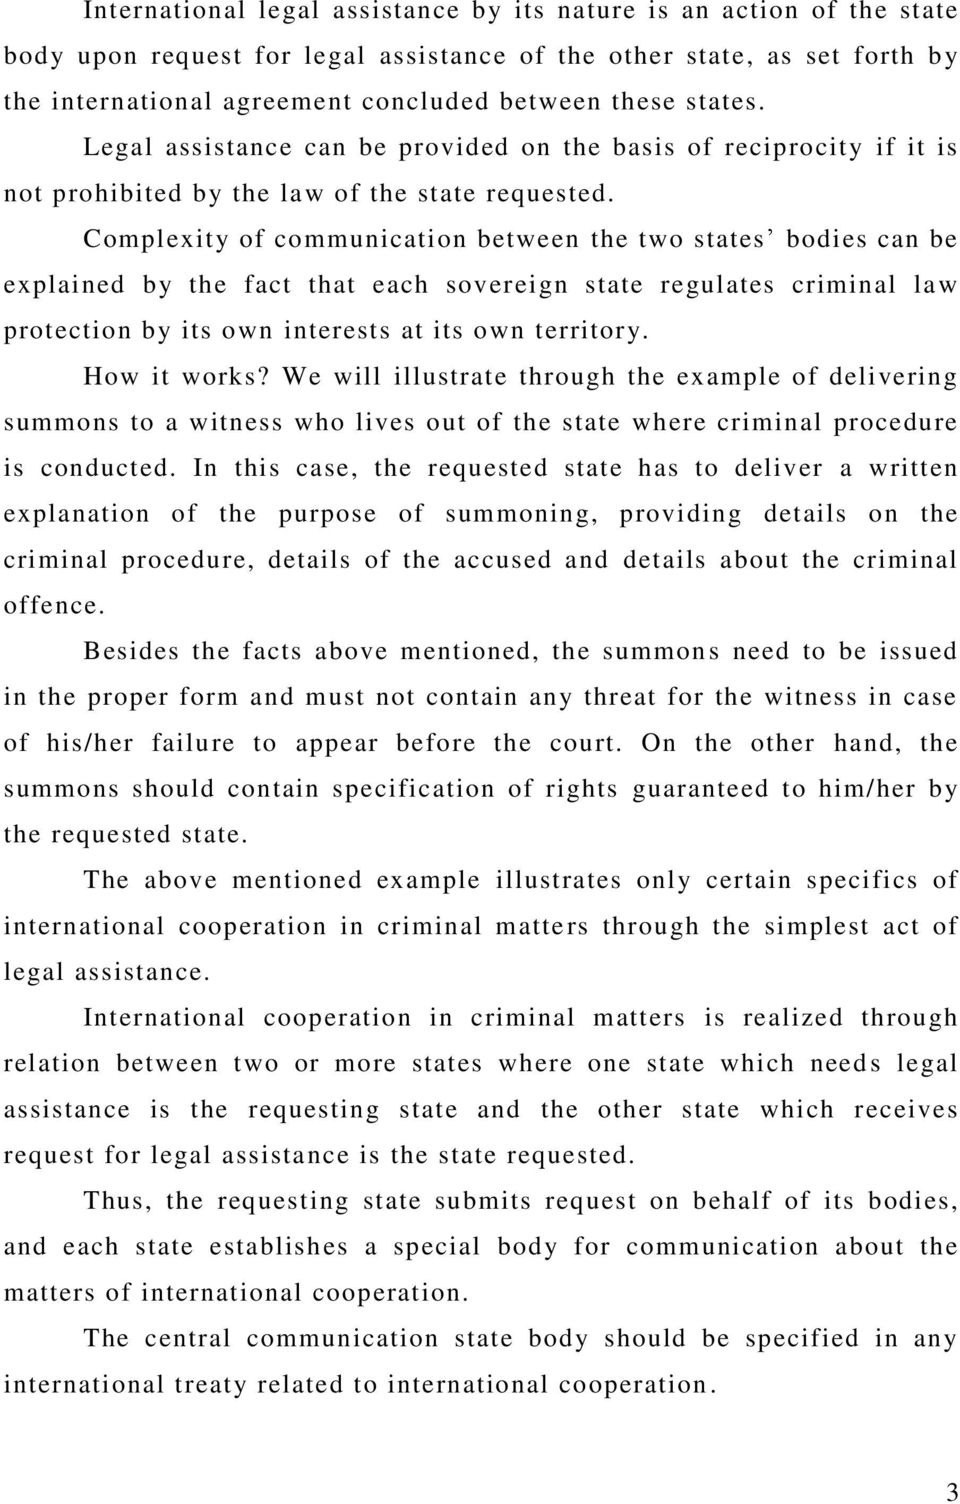 Complexity of communication between the two states bodies can be explained by the fact that each sovereign state regulates criminal law protection by its own interests at its own territory.